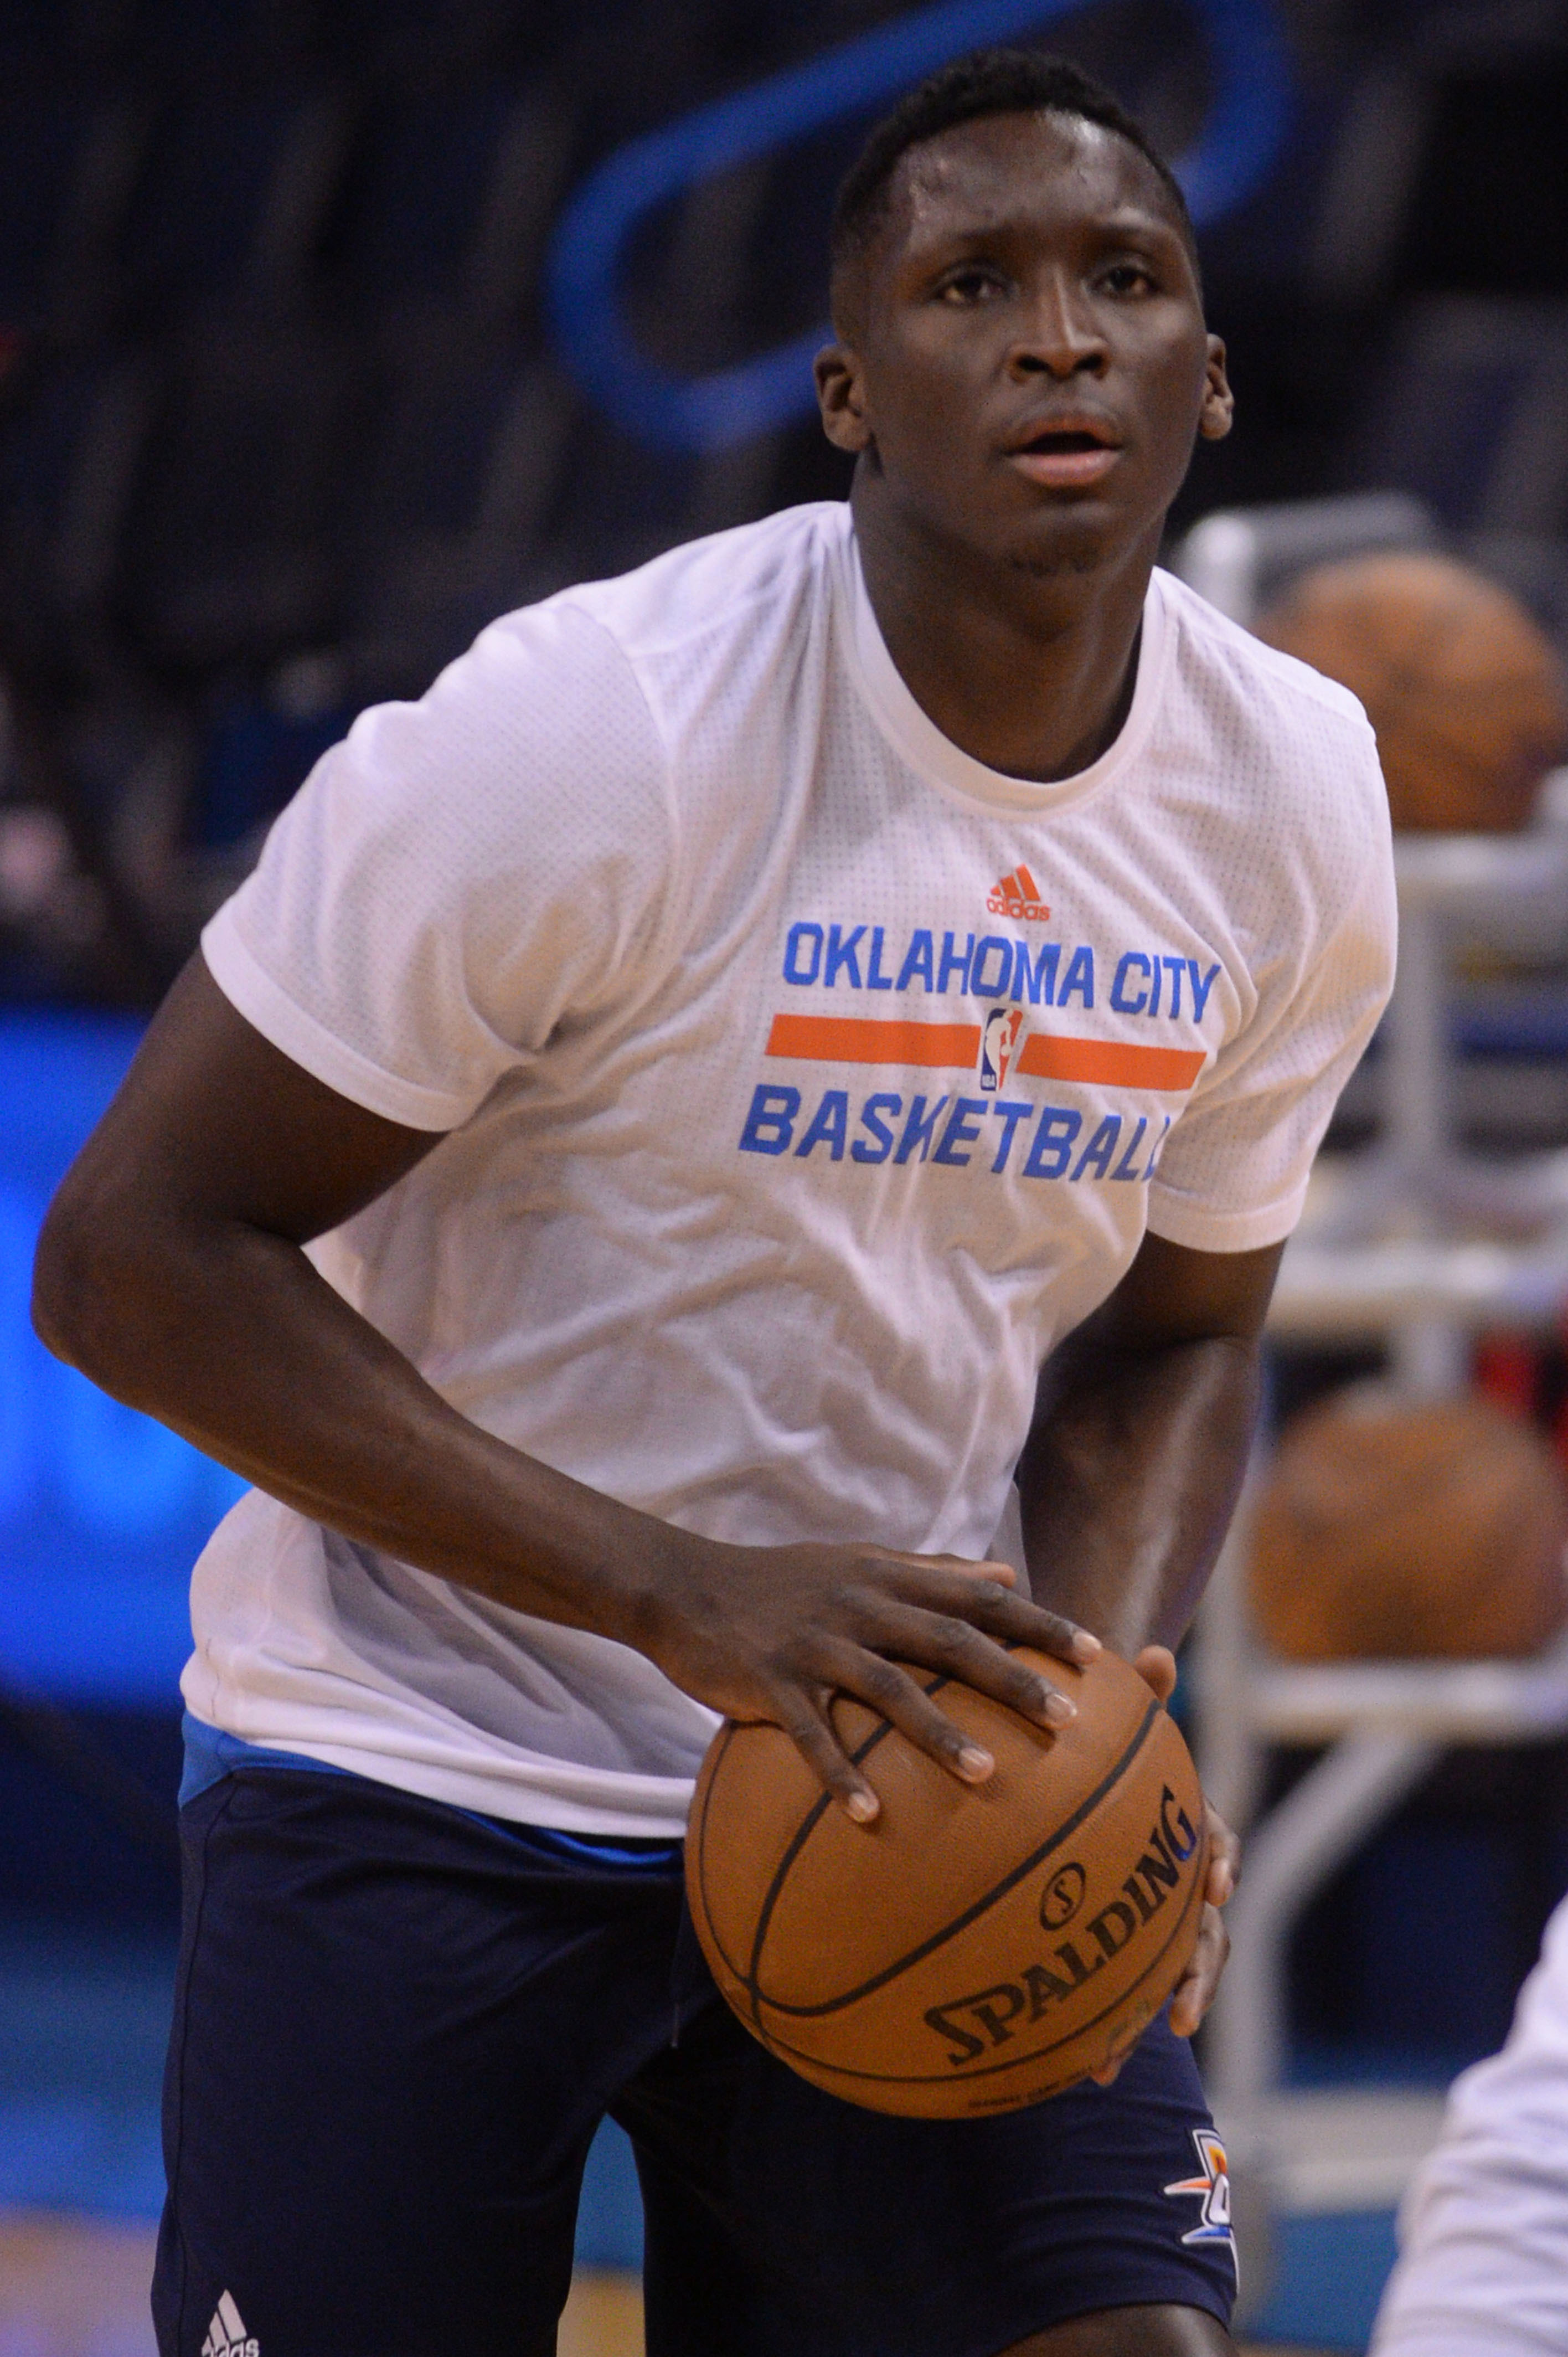 Feb 5, 2017; Oklahoma City, OK, USA; Oklahoma City Thunder guard Victor Oladipo (5) warms up prior to action against the Portland Trail Blazers at Chesapeake Energy Arena. Mandatory Credit: Mark D. Smith-USA TODAY Sports